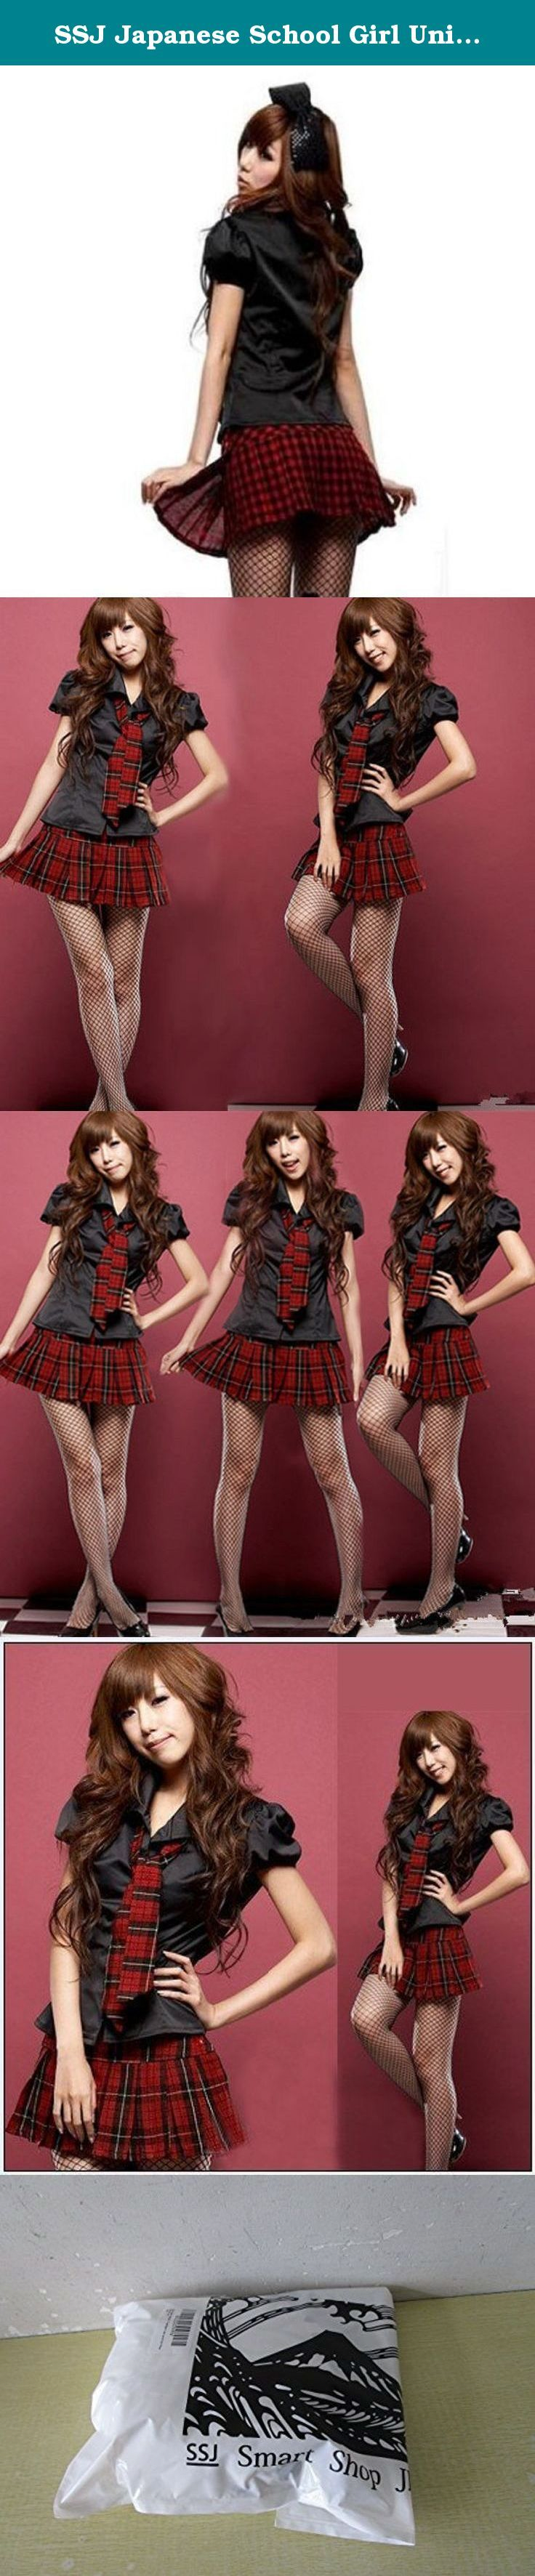 melhores ideias sobre should students wear uniforms no ssj ese school girl uniform black red student clothes tartan check the owner of